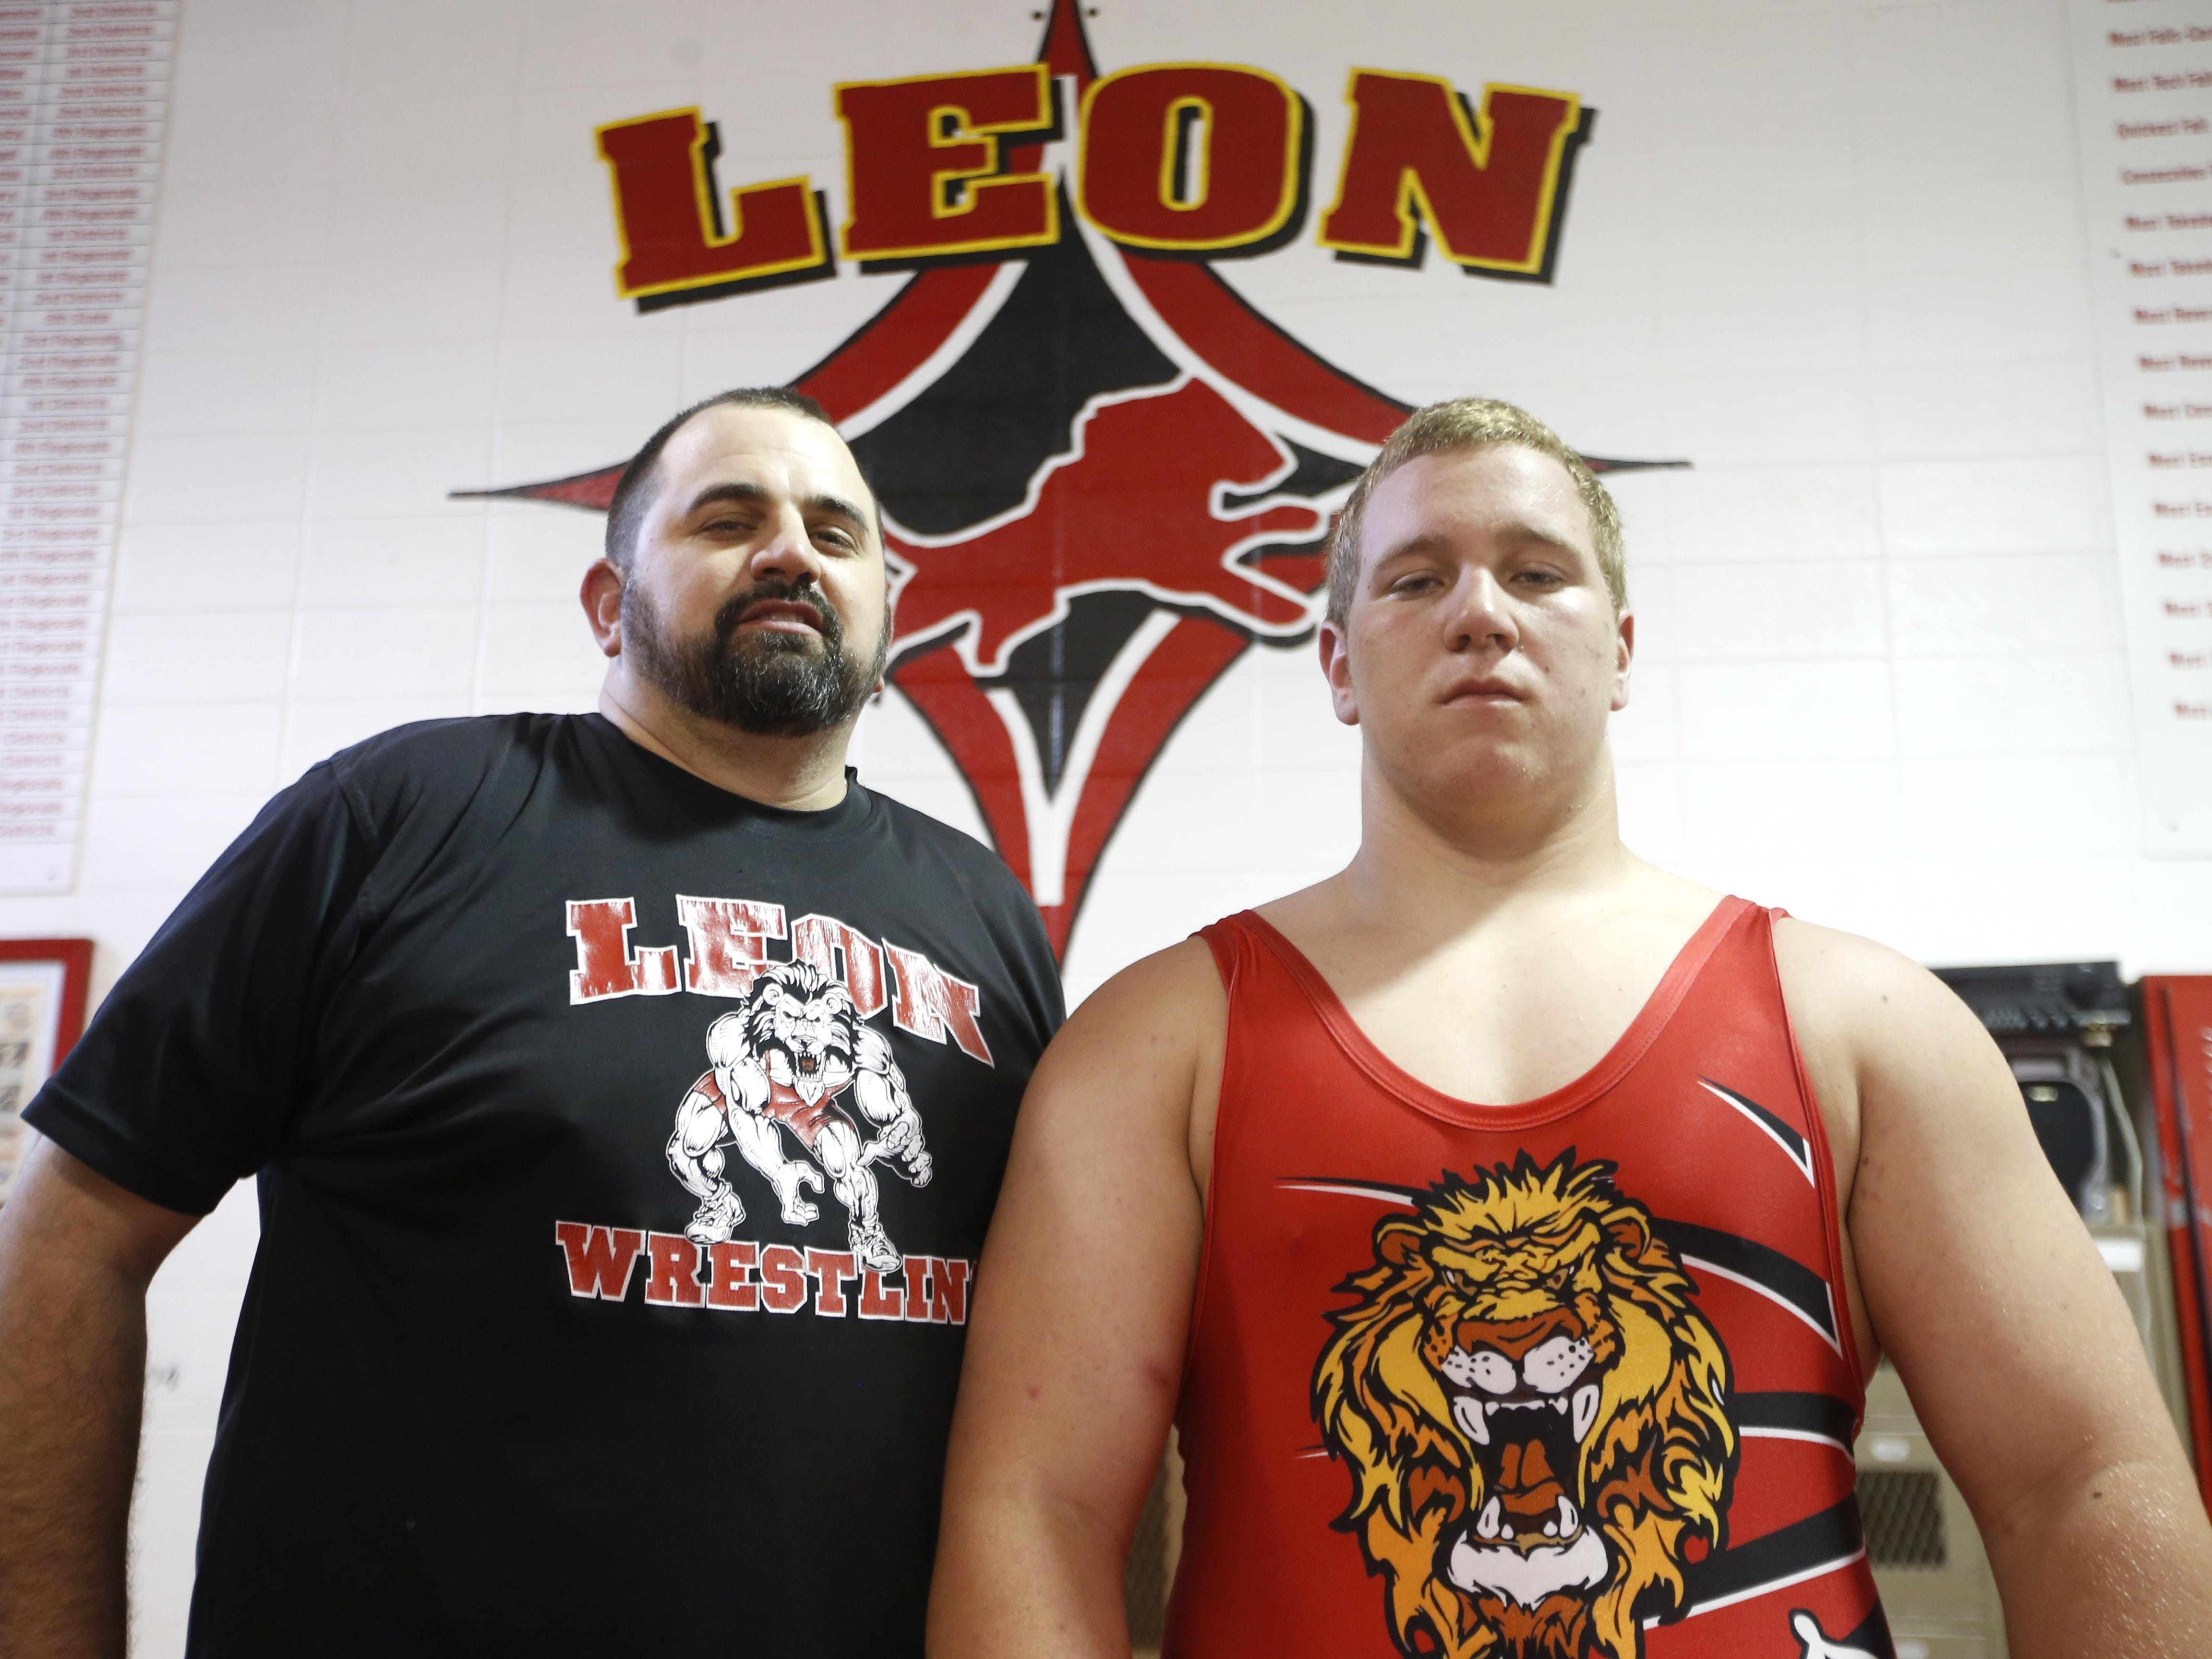 Joe Rondone/Democrat Leon's Gabe Beyer, right, was named All-Big Bend Wrestler of the Year, while Leon's Chuck Ringel was named Coach of the Year. See complete All-Big Bend Wrestling team on Page 3D. Wrestler of the Year Gabe Beyer with his coach at Leon High School, Coach of the Year Chuck Ringel.